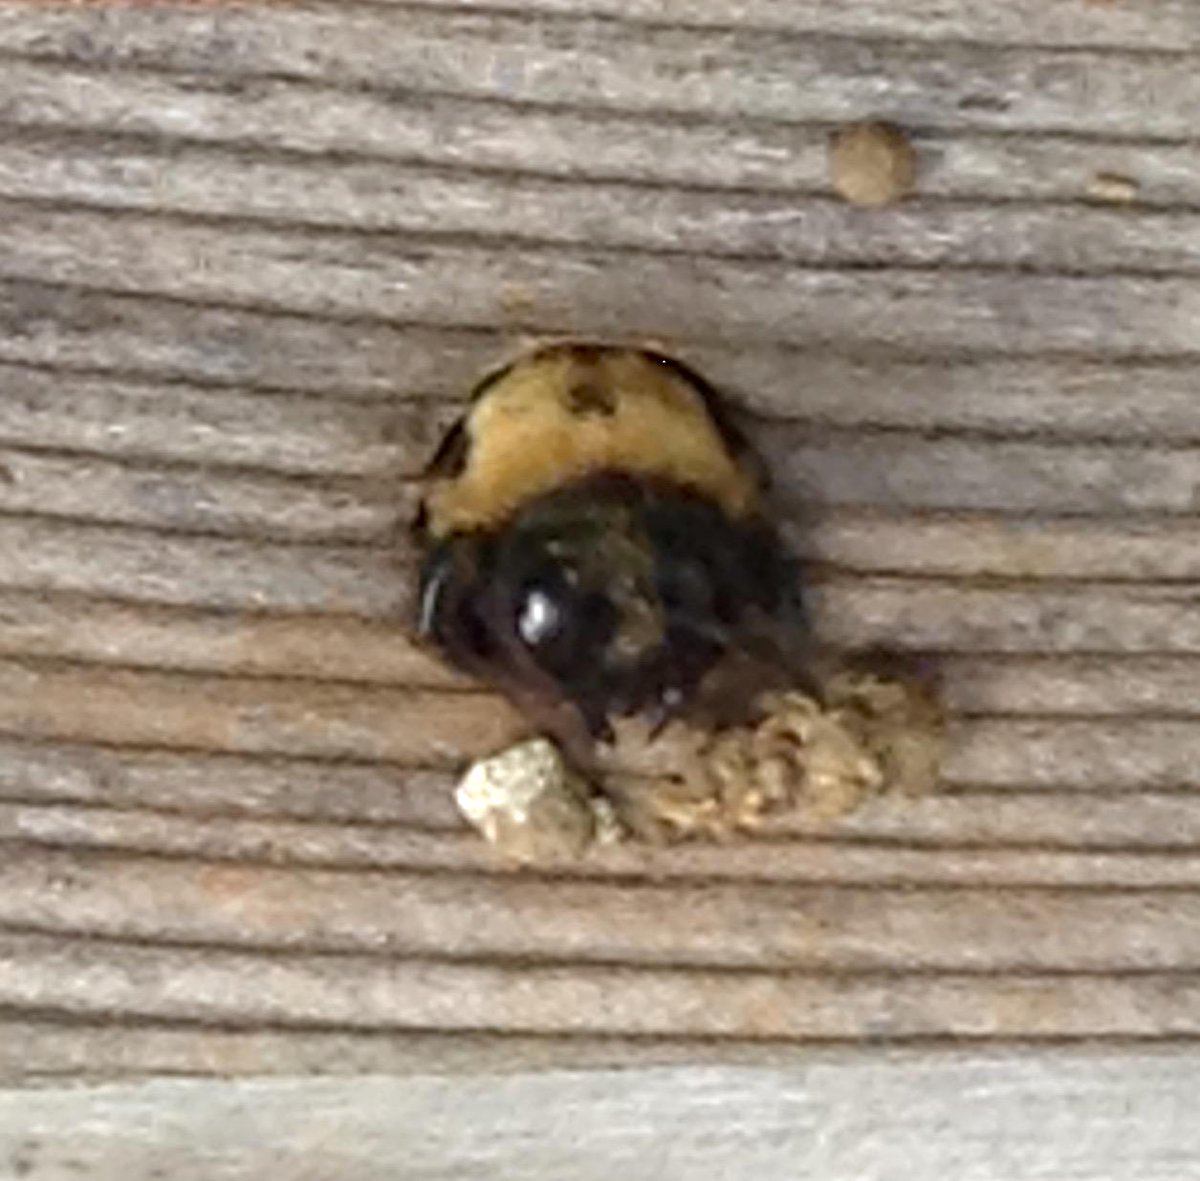 top of carpenter bee coming out from a hole in wood with several bits of detritus nearby